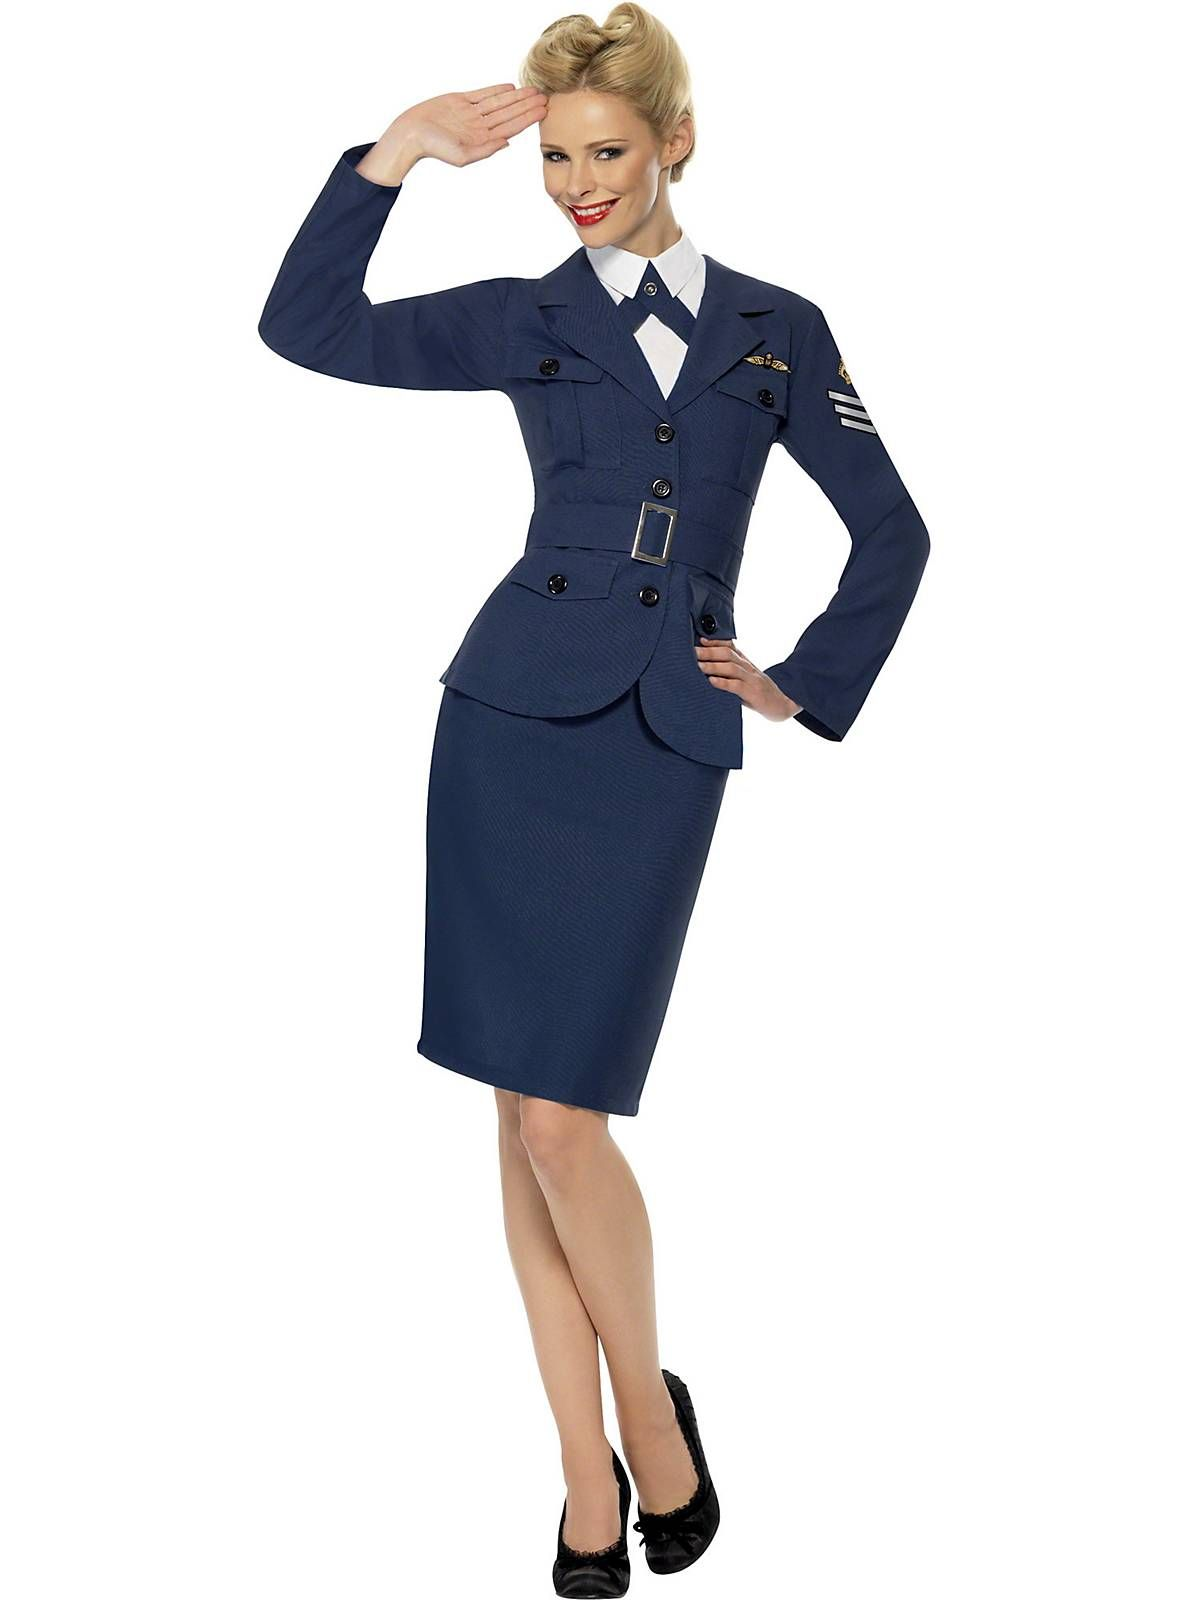 88cc8ac84072 WWII Air Force Female Captain Costume